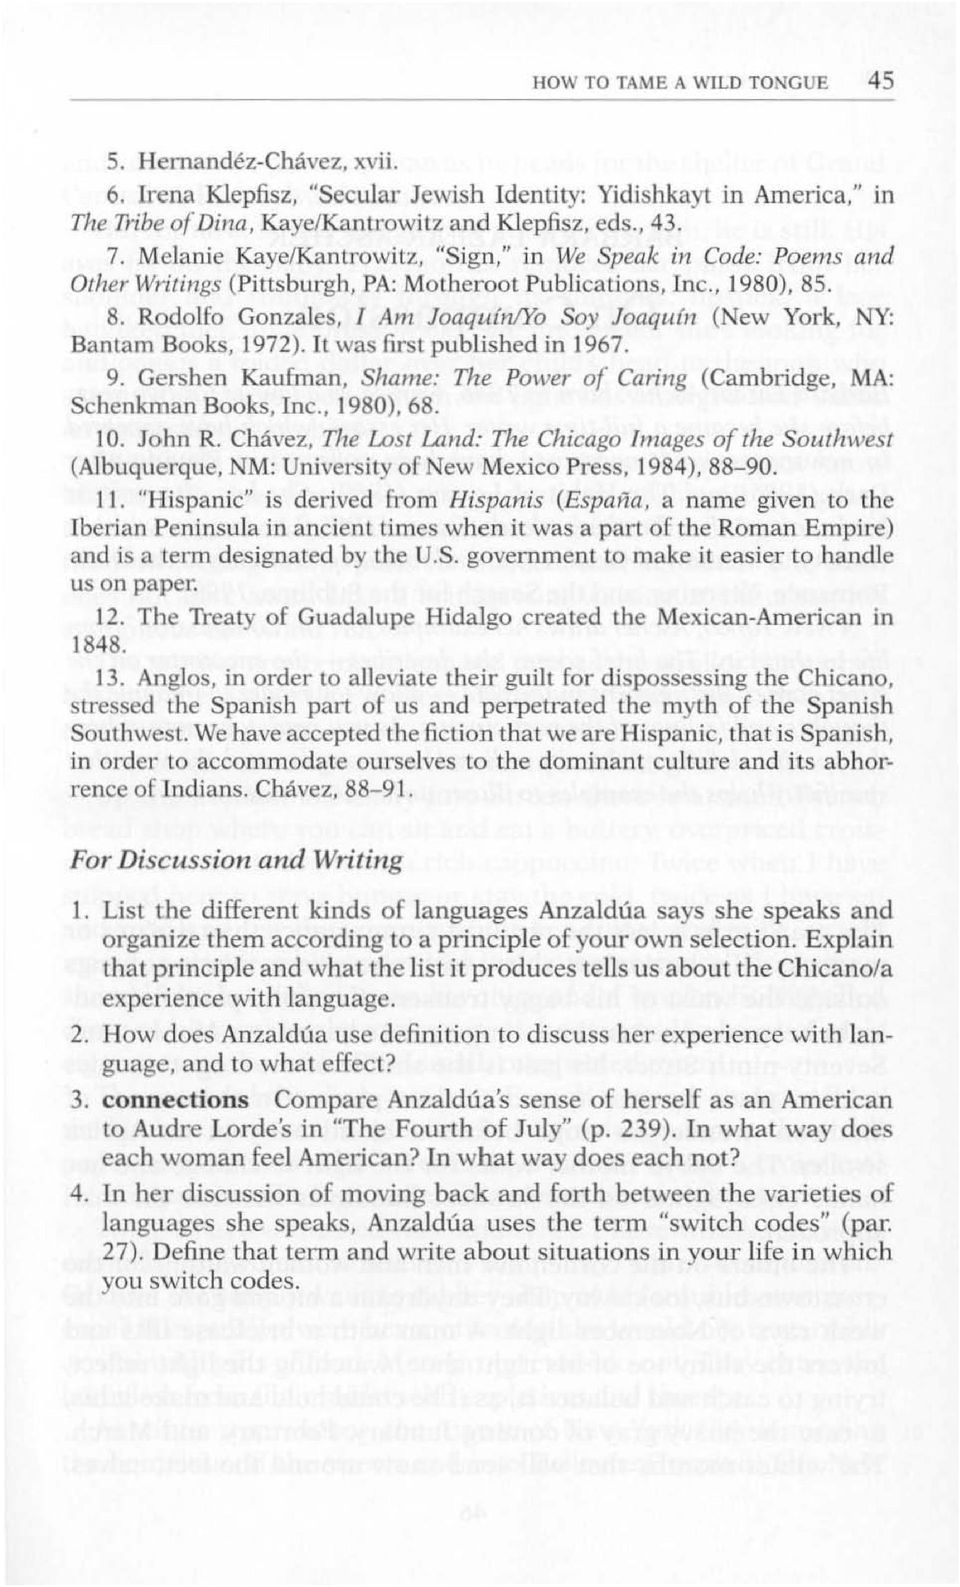 """how to tame a wild tonguemother tongue essay How to tame a wild tongue/mother tongue essay the first chapter of her book, borderlands/la frontera: the new mestiza is titled """"how to tame a wild tongue."""